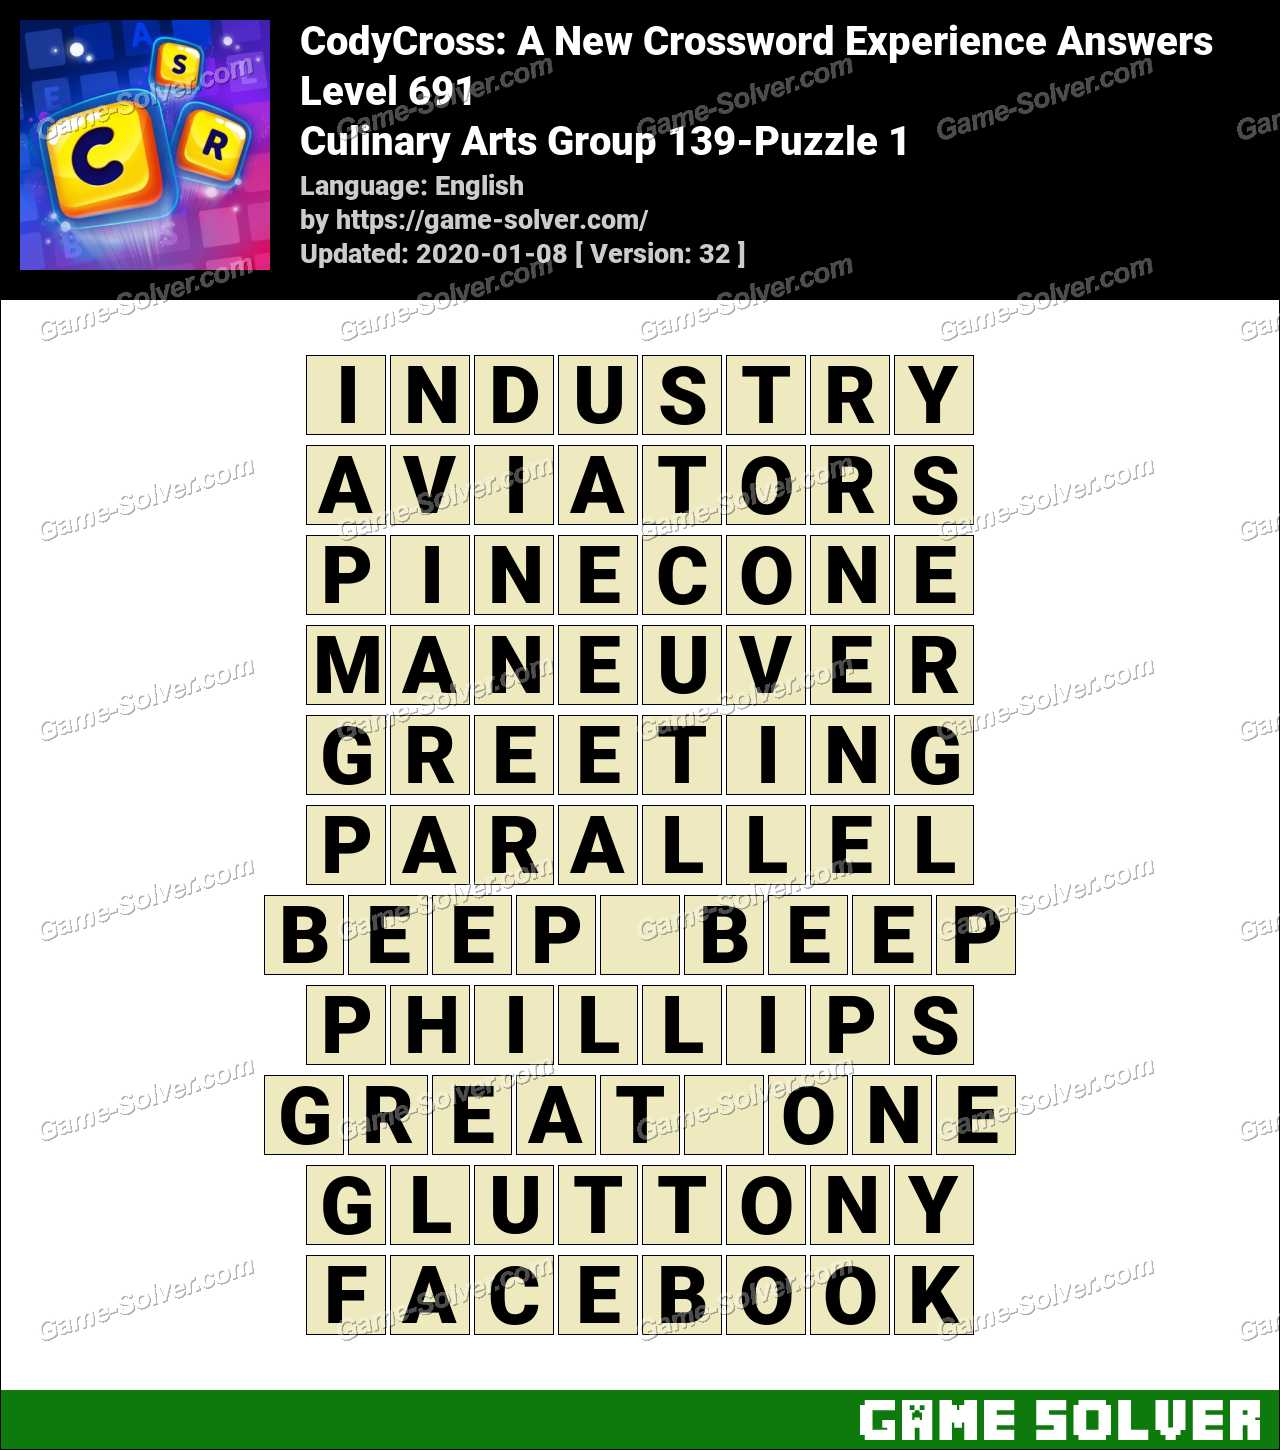 CodyCross Culinary Arts Group 139-Puzzle 1 Answers